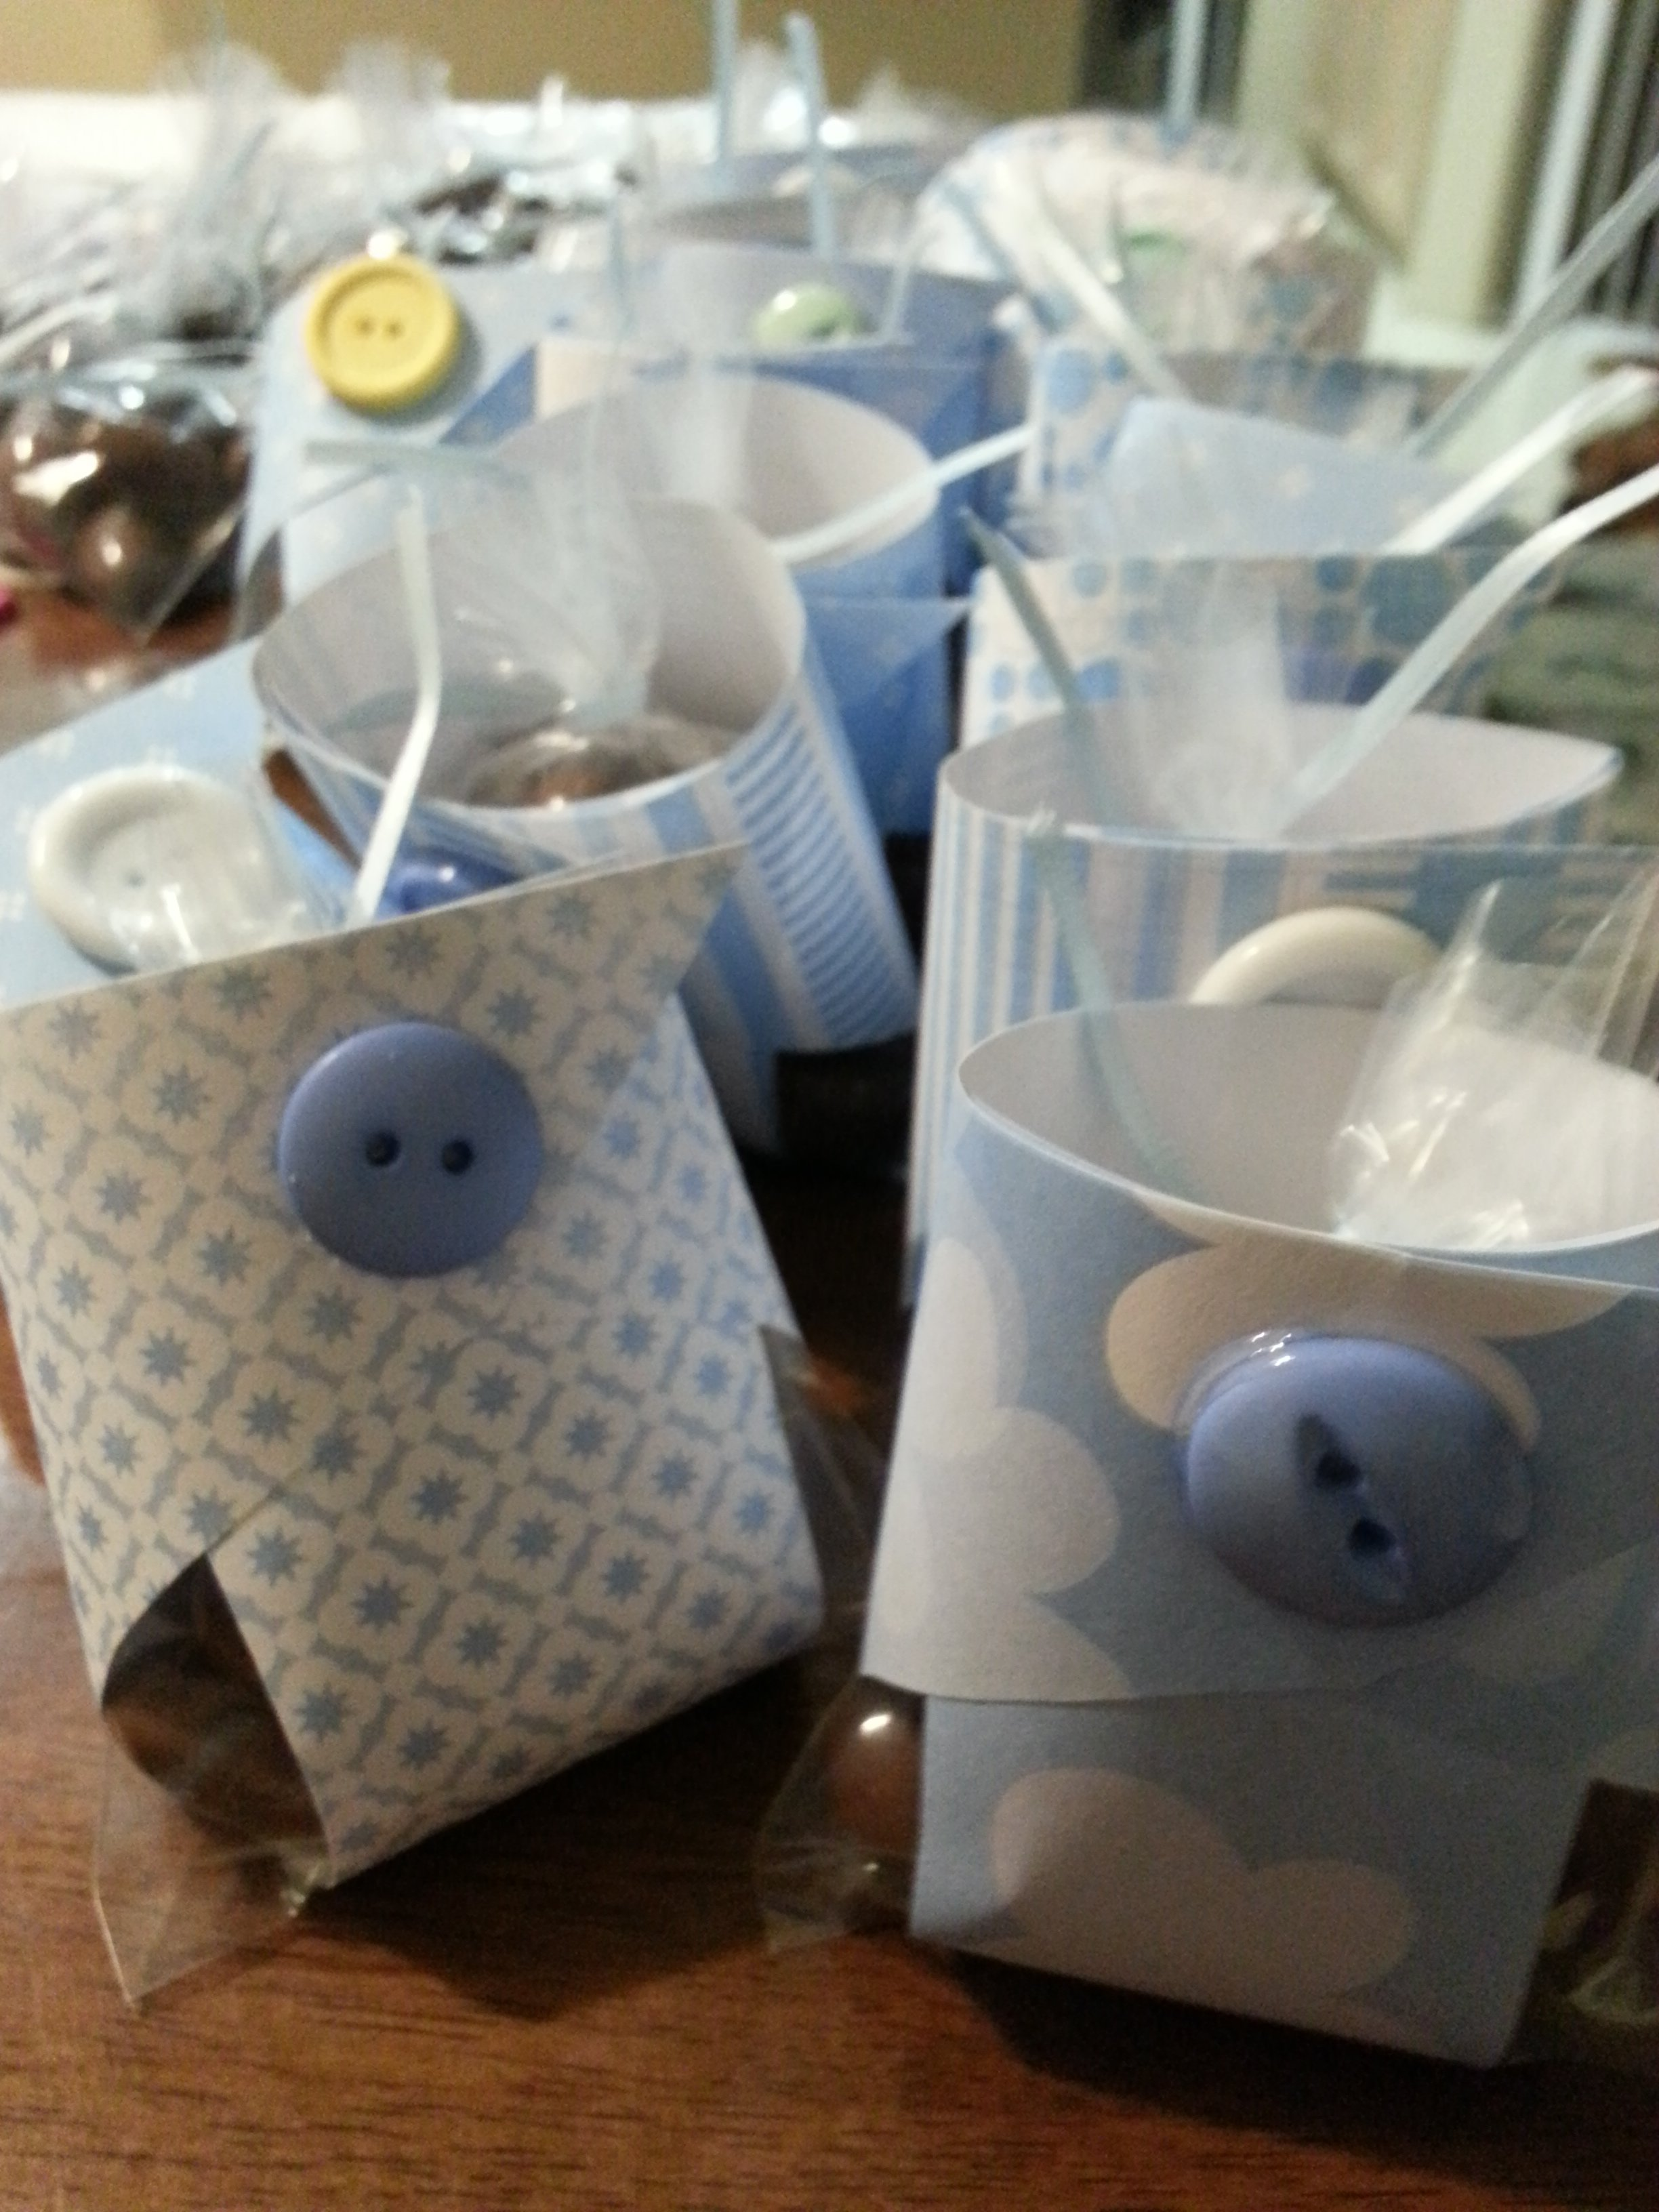 10 Most Popular Baby Shower Favor Ideas For Boys boy baby shower favors poopy diaper crafts pinterest boy baby 2021